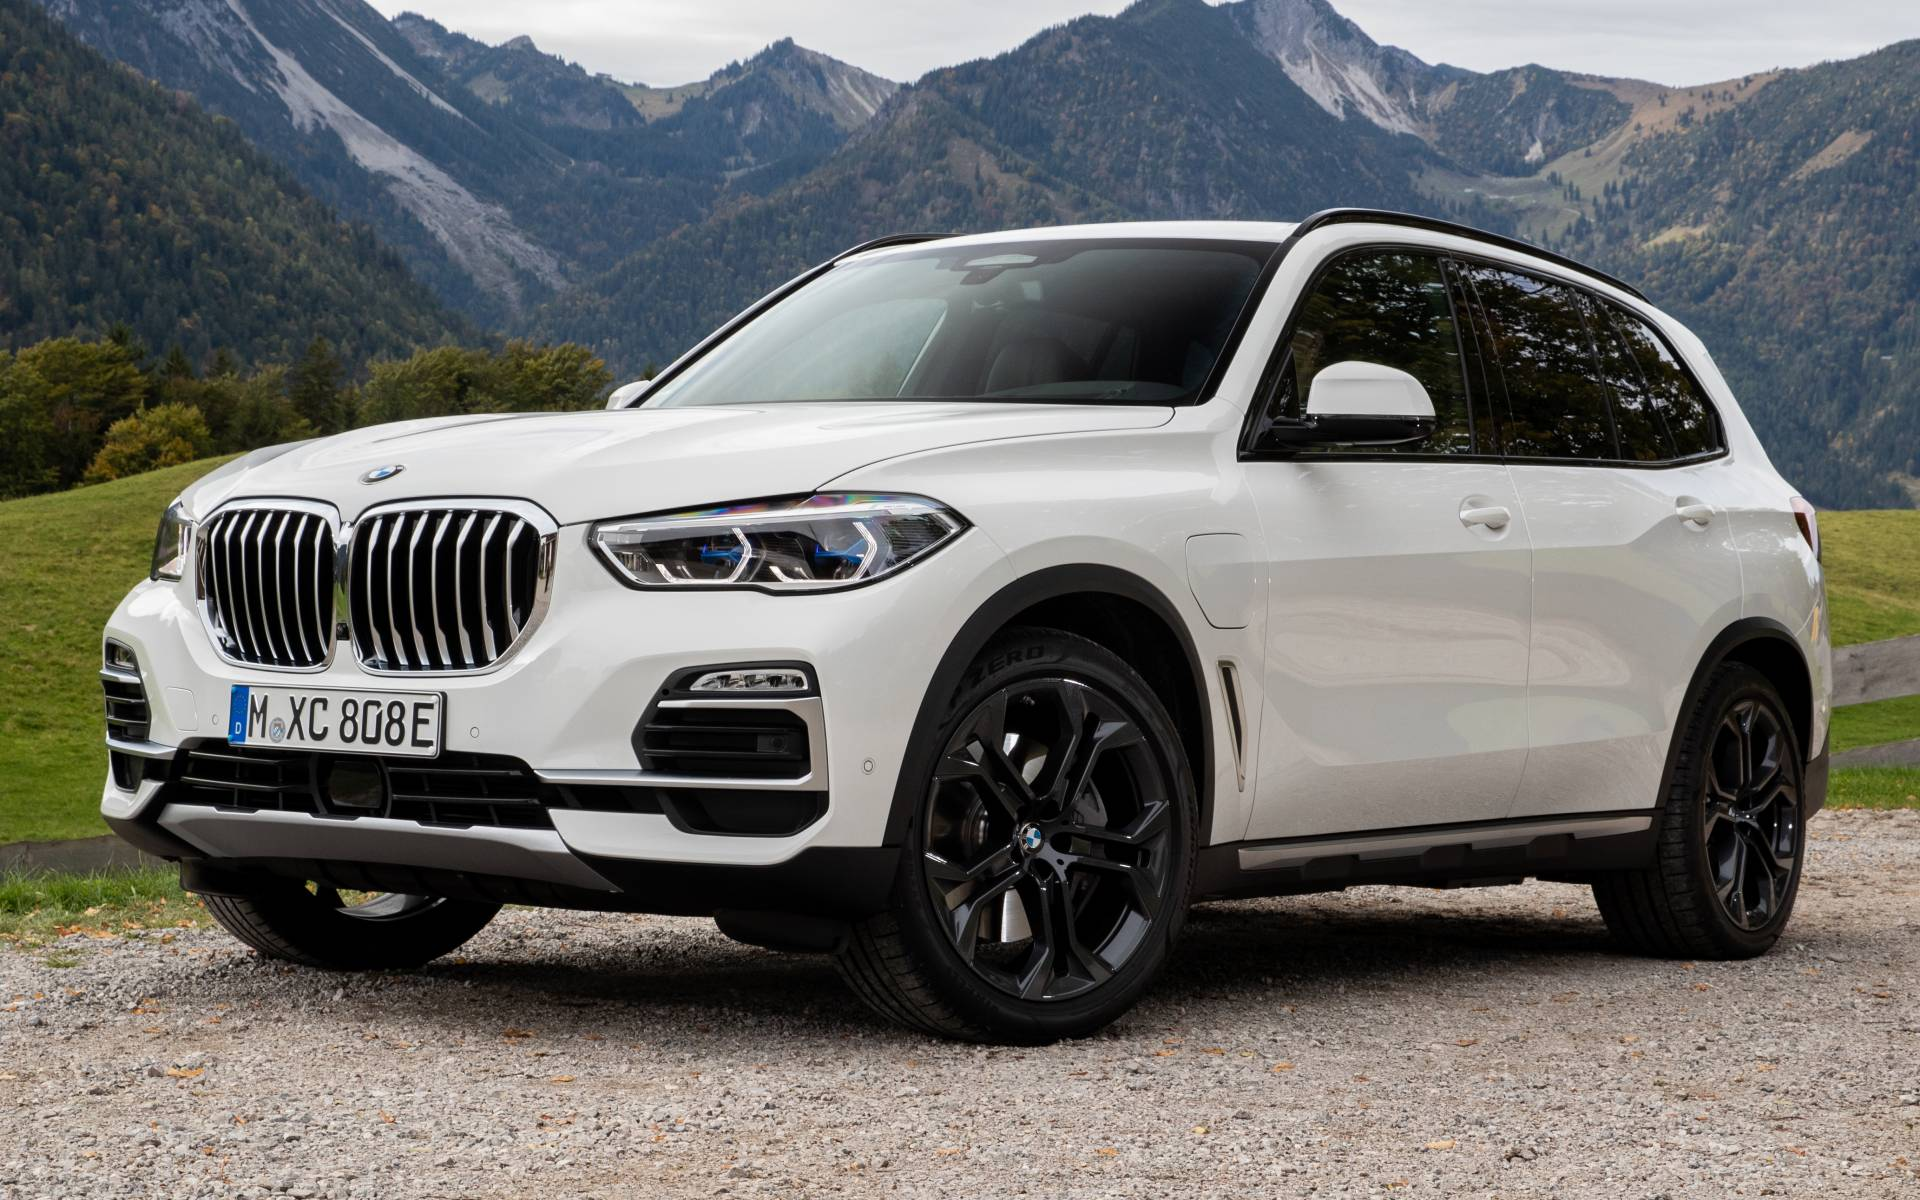 2020 Bmw X5 M50i Specifications The Car Guide